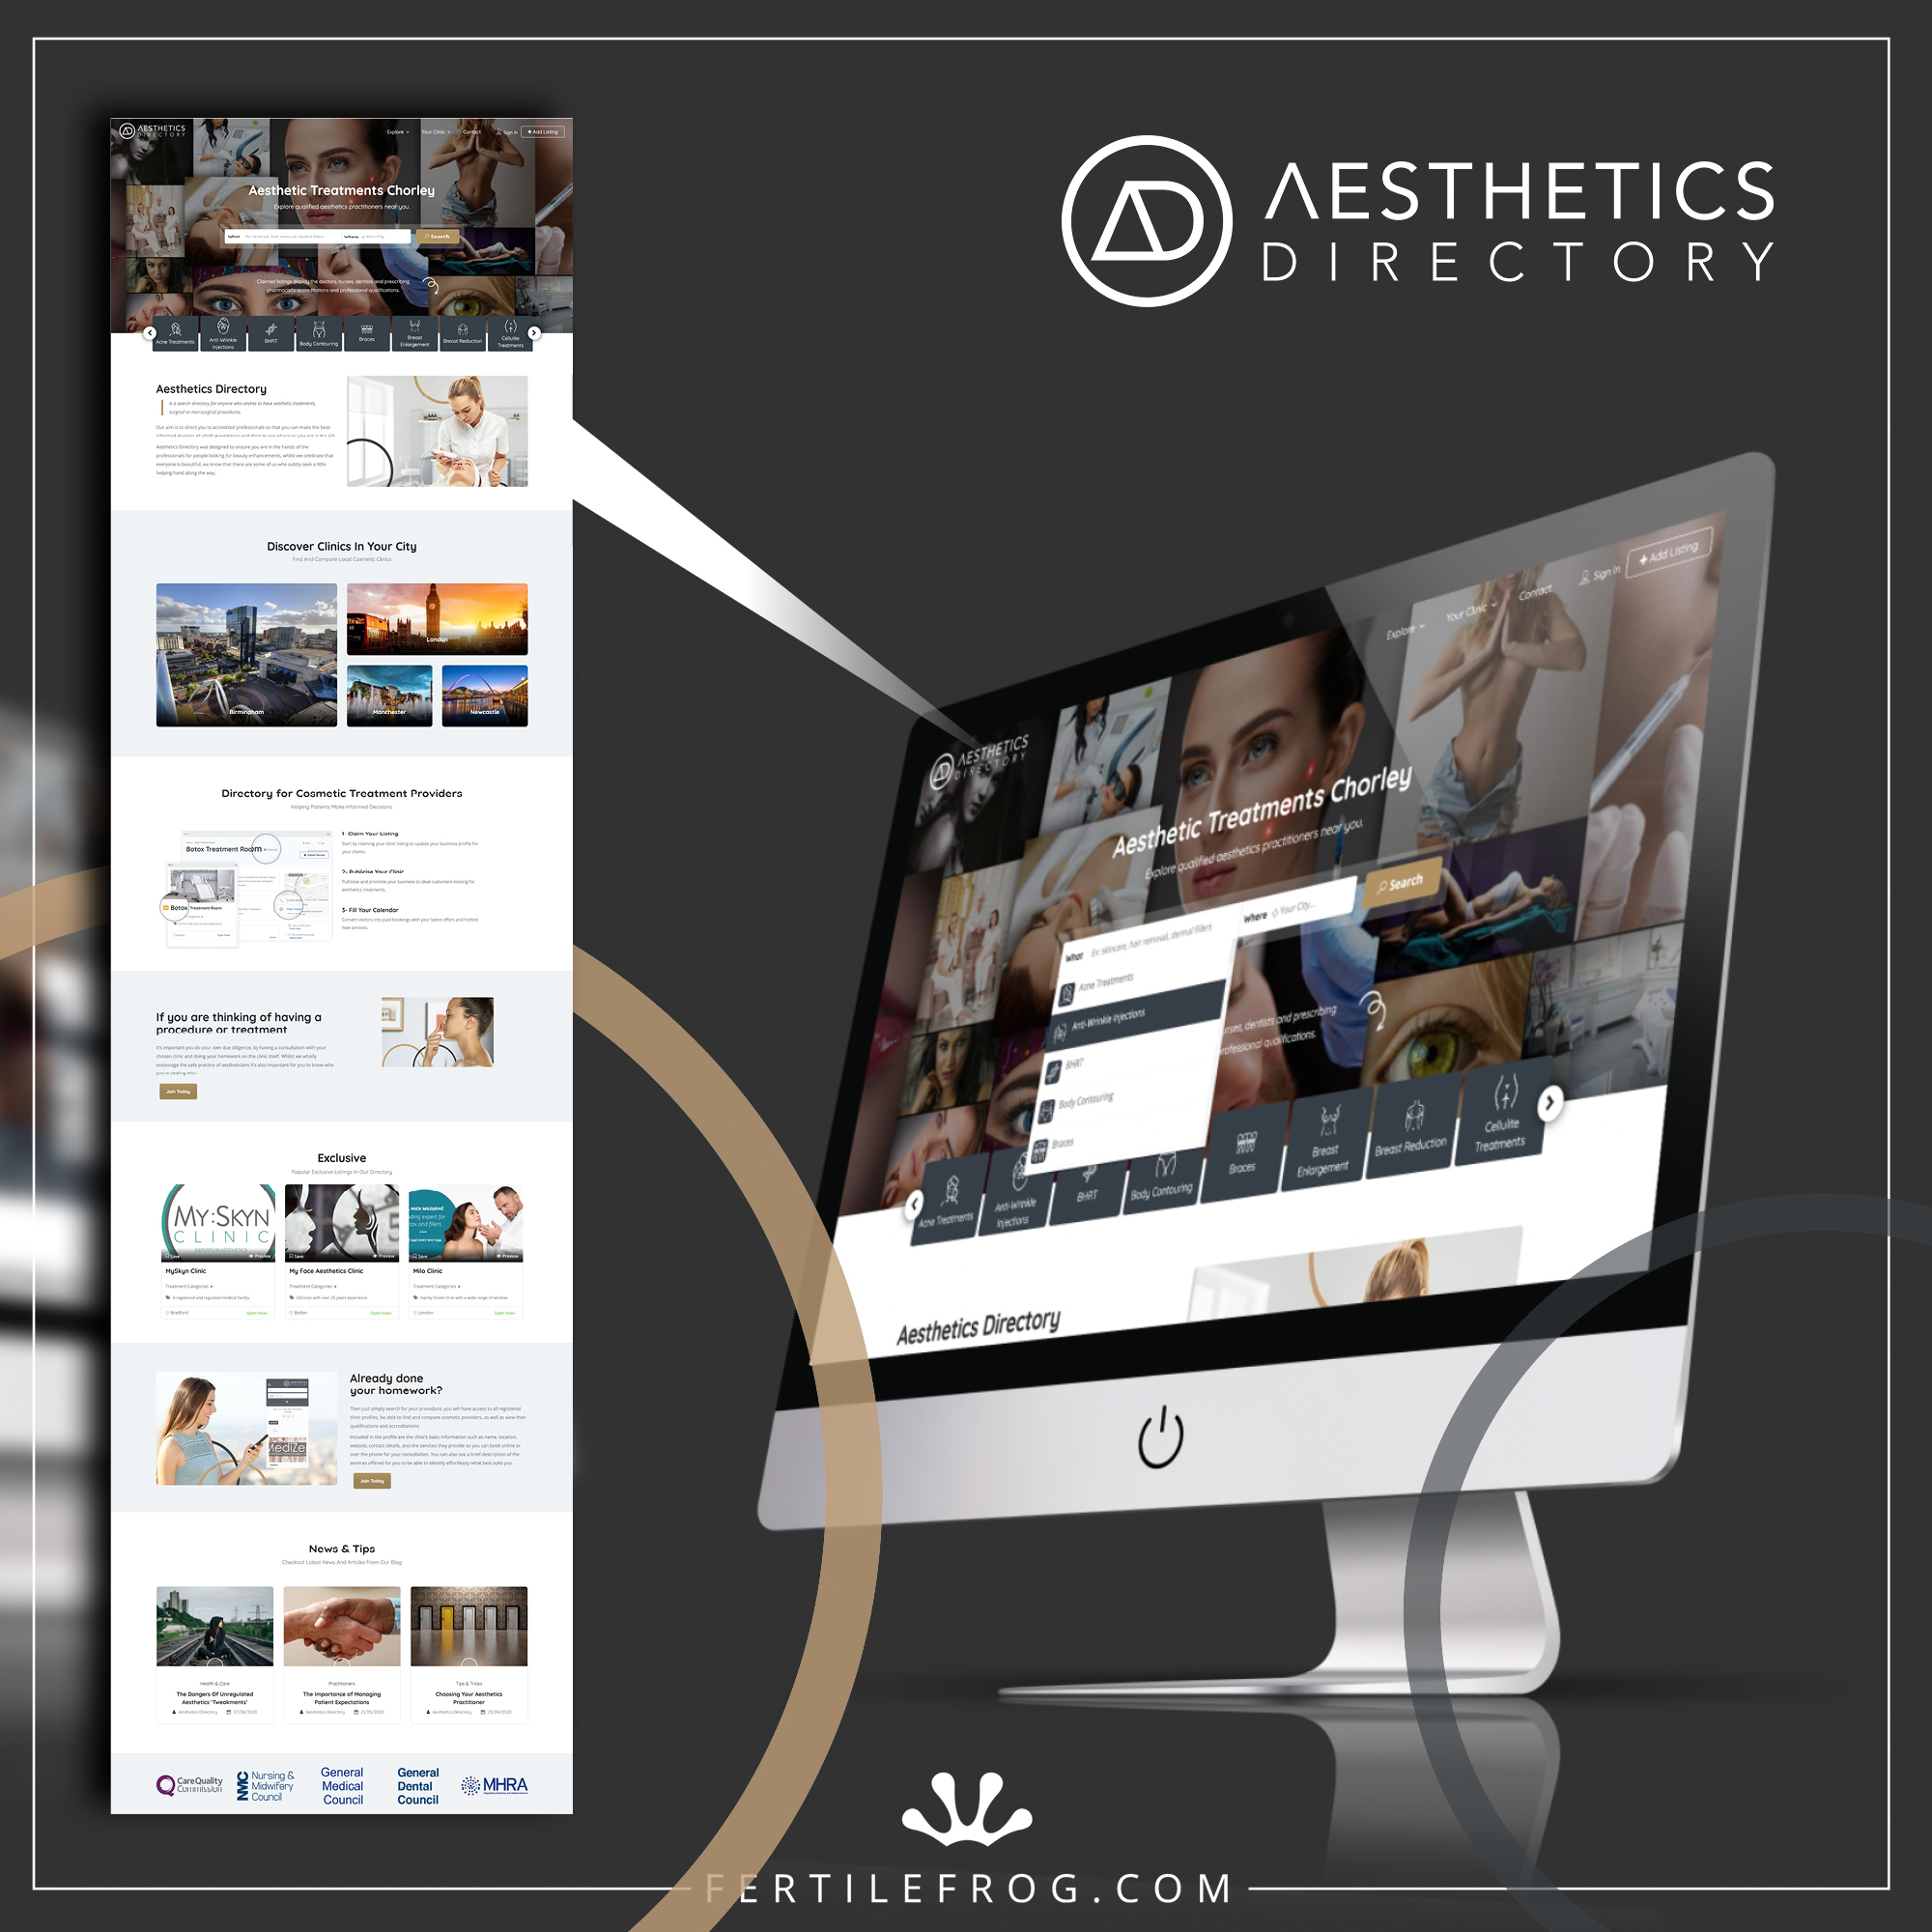 Graphic showing a screenshot of the Aesthetics Directory homepage